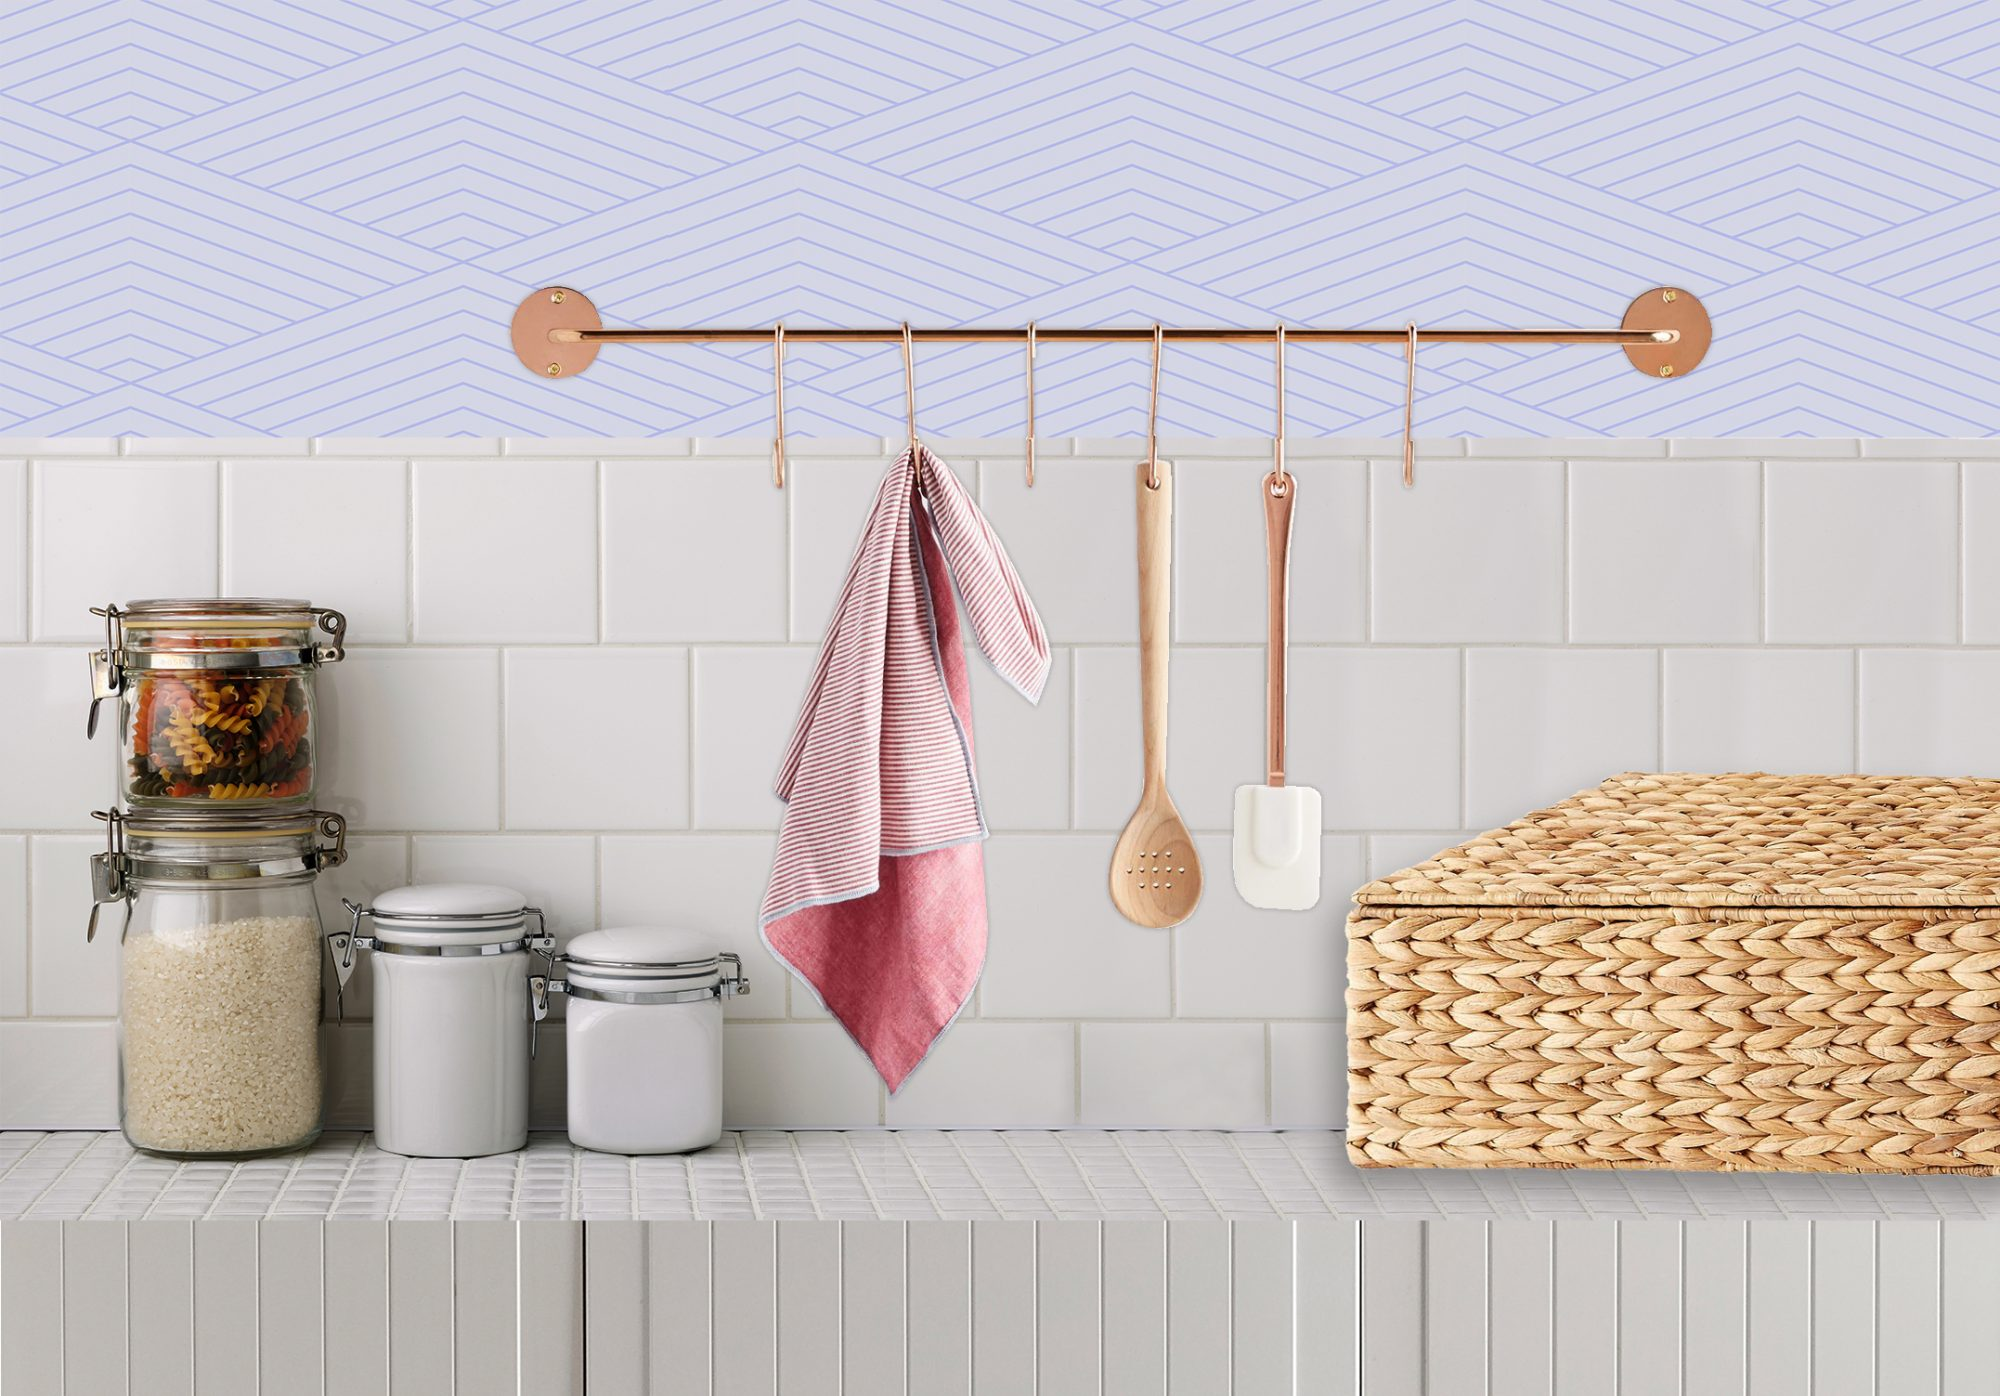 Kitchen Counter Organization Ideas, Hooks for dish towels and pots and pans in kitchen